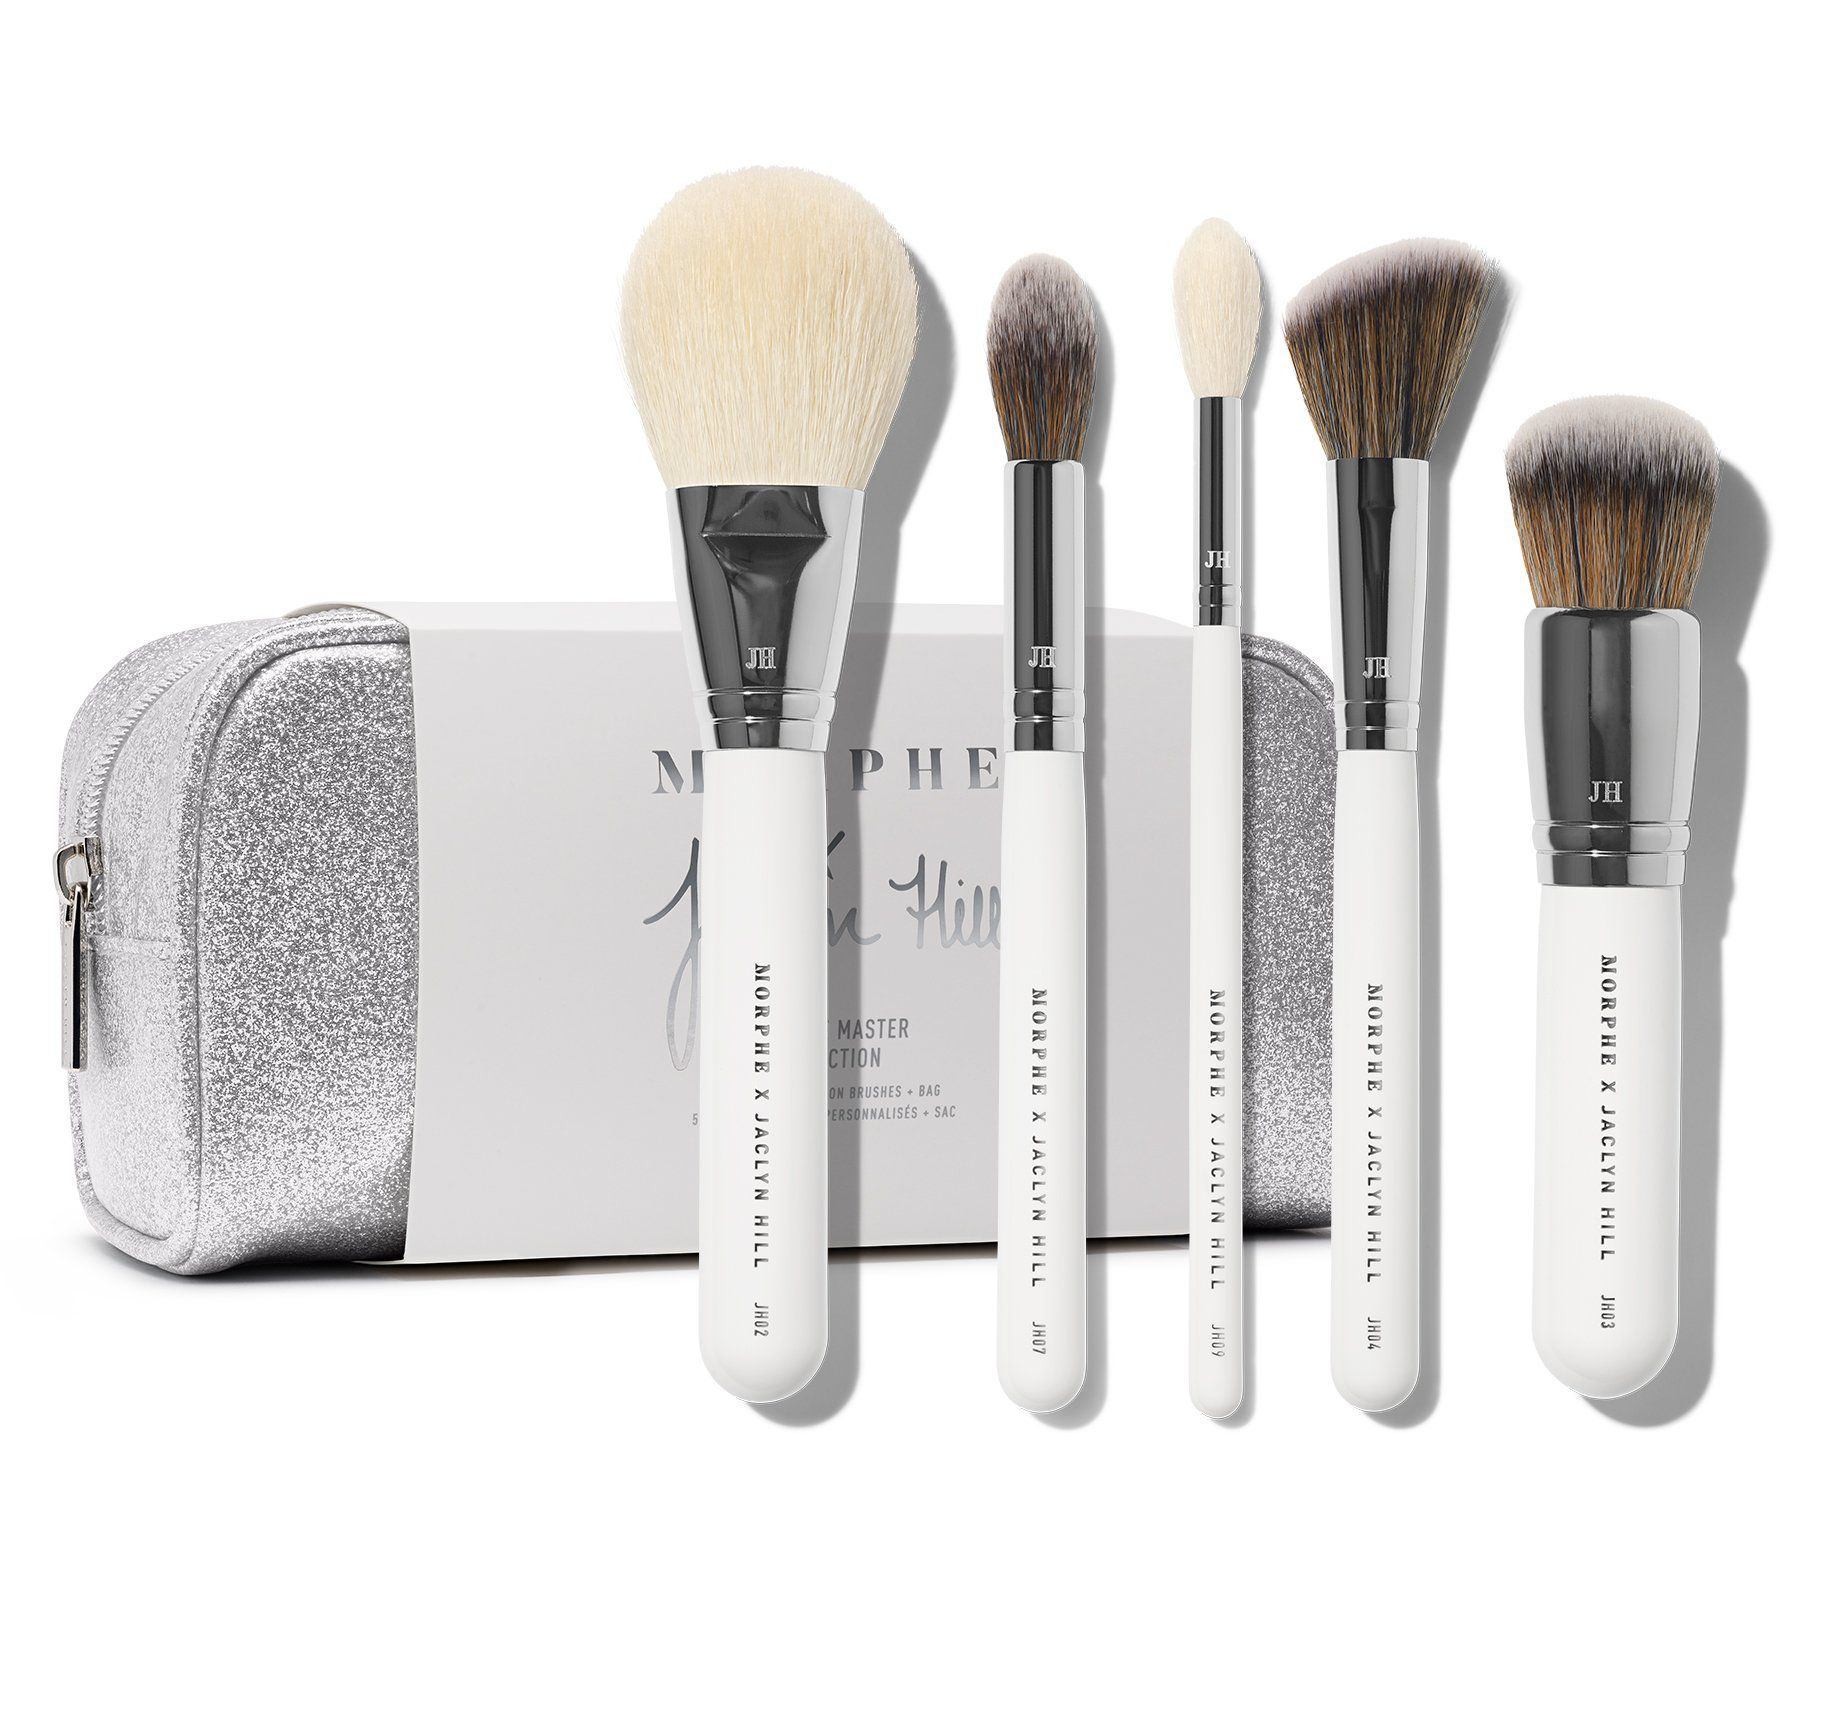 Kit The Complexion Master Collection Jaclyn Hill X MORPHE BRUSHES